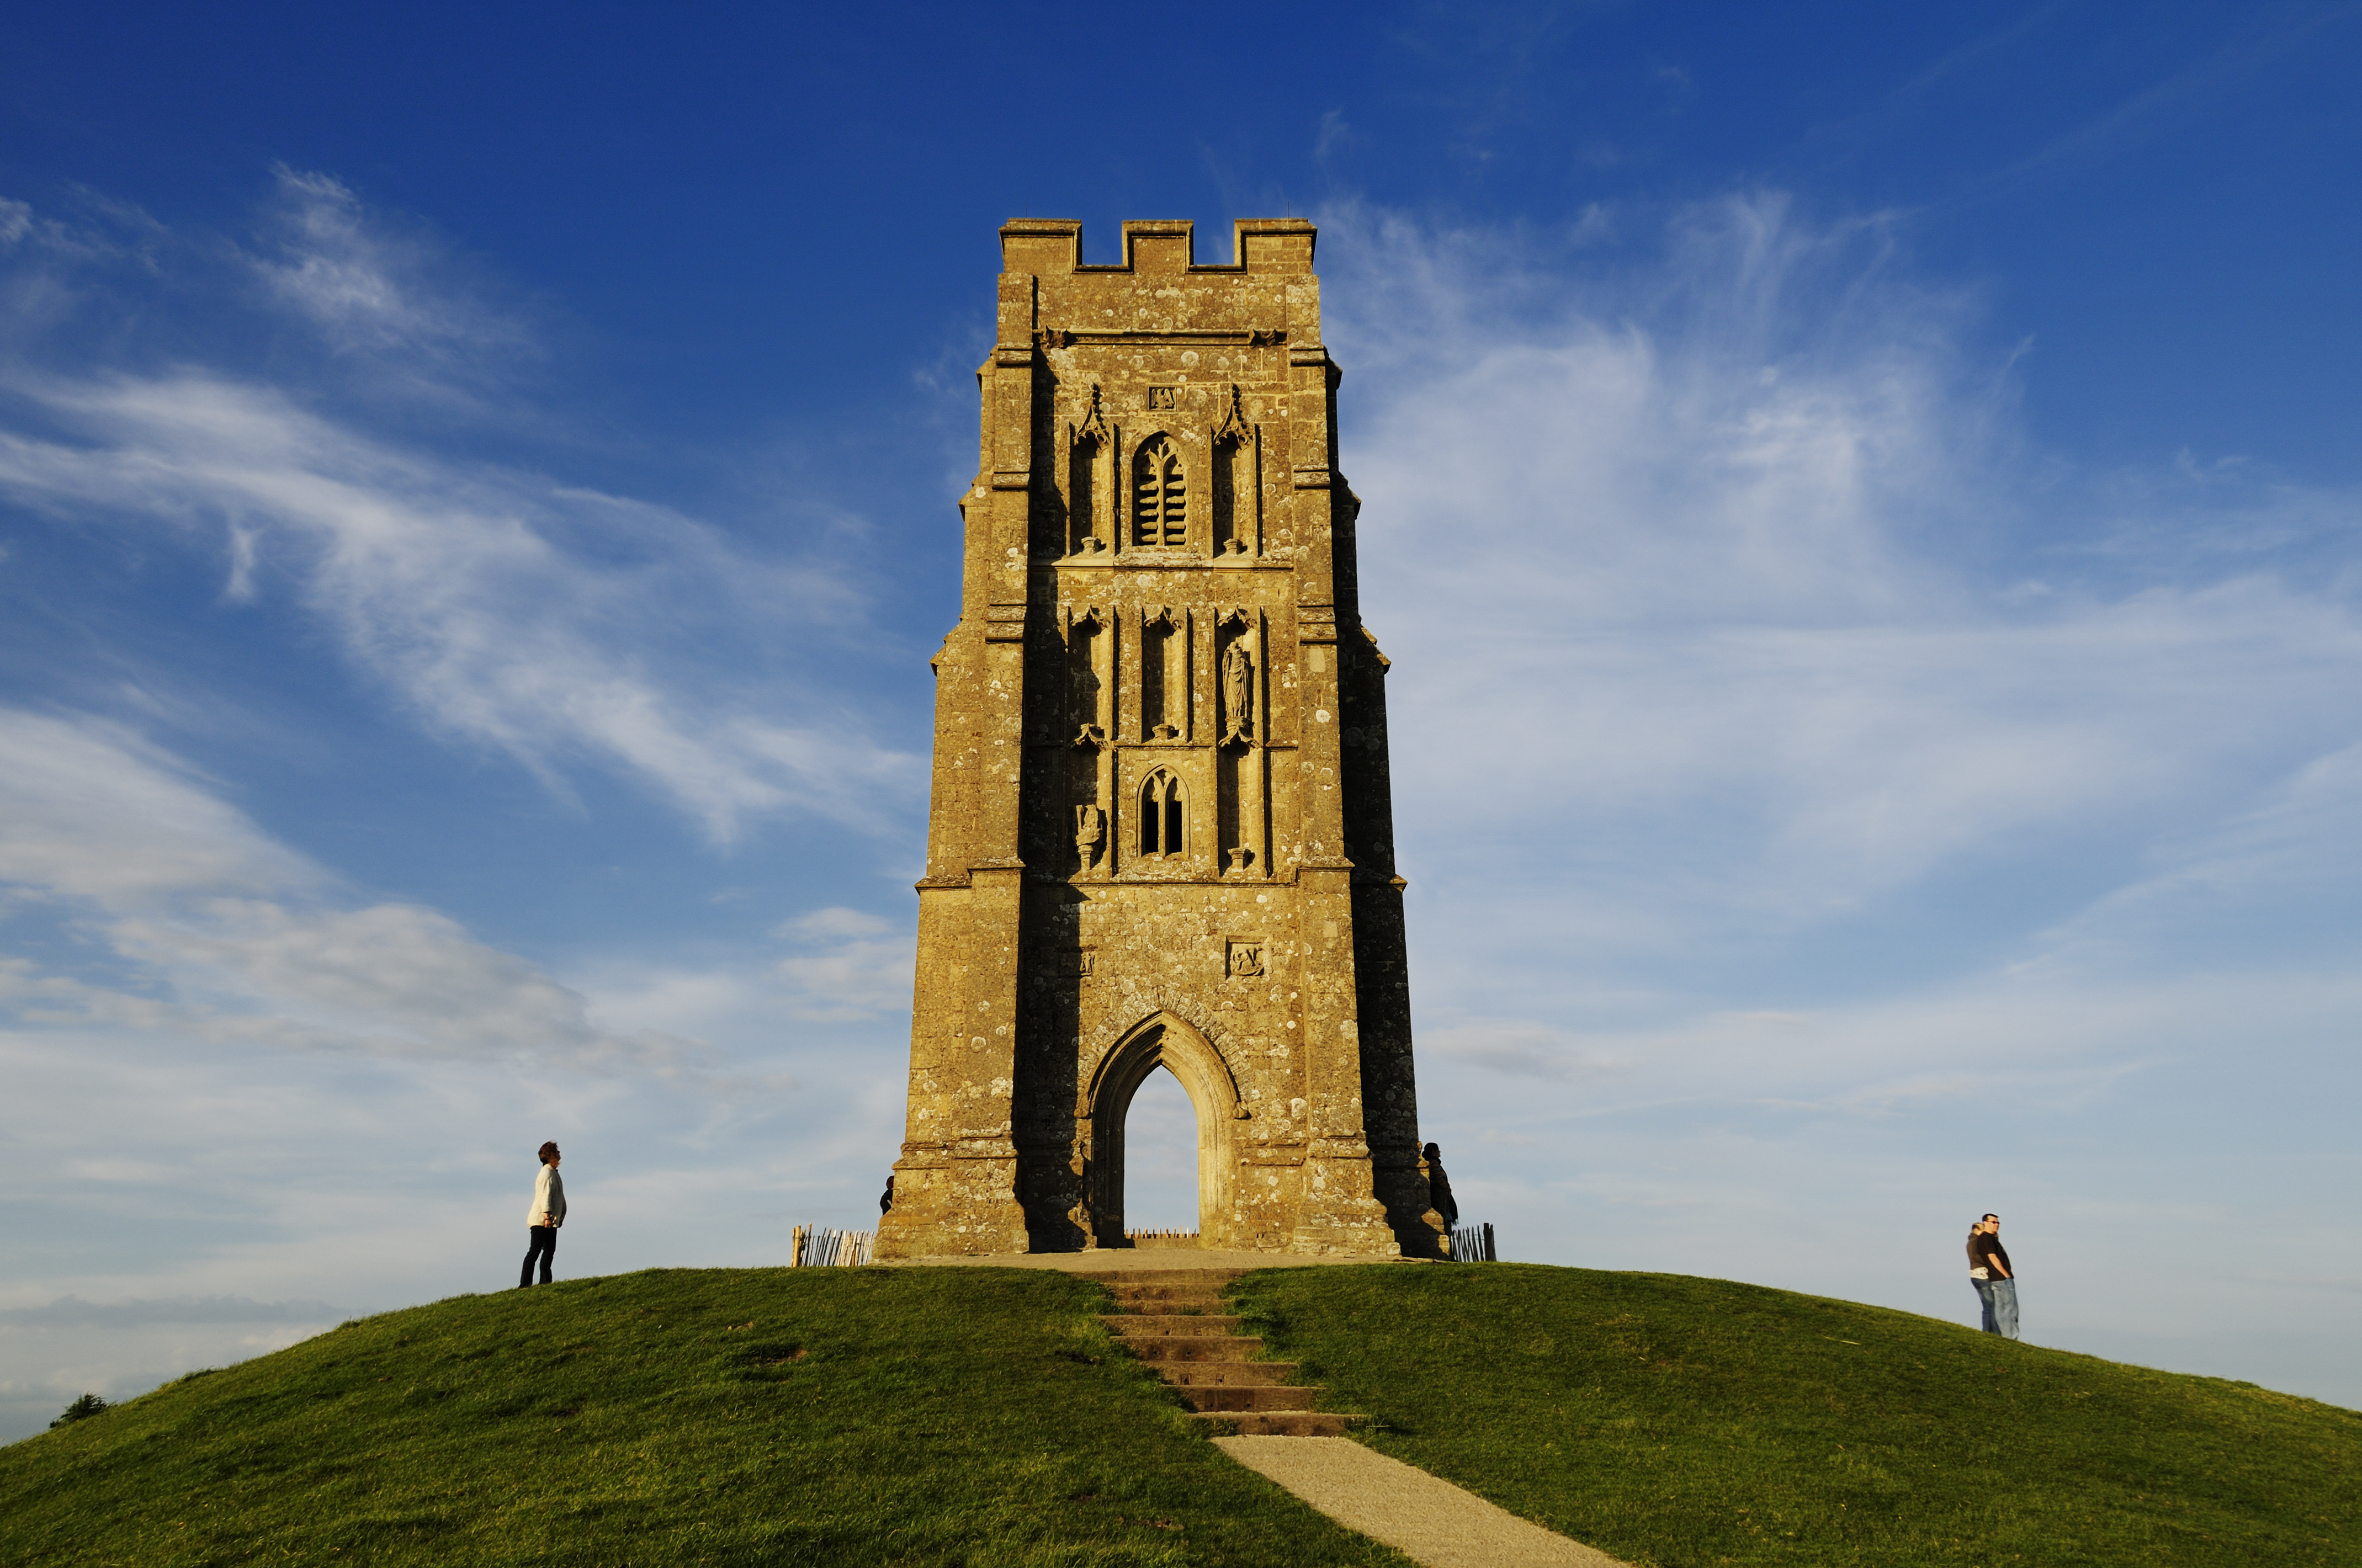 Glastonbury Tor Glastonbury, Glastonbury Tor & St. Michael's Tower - Spirit Of Avalon Tours ...